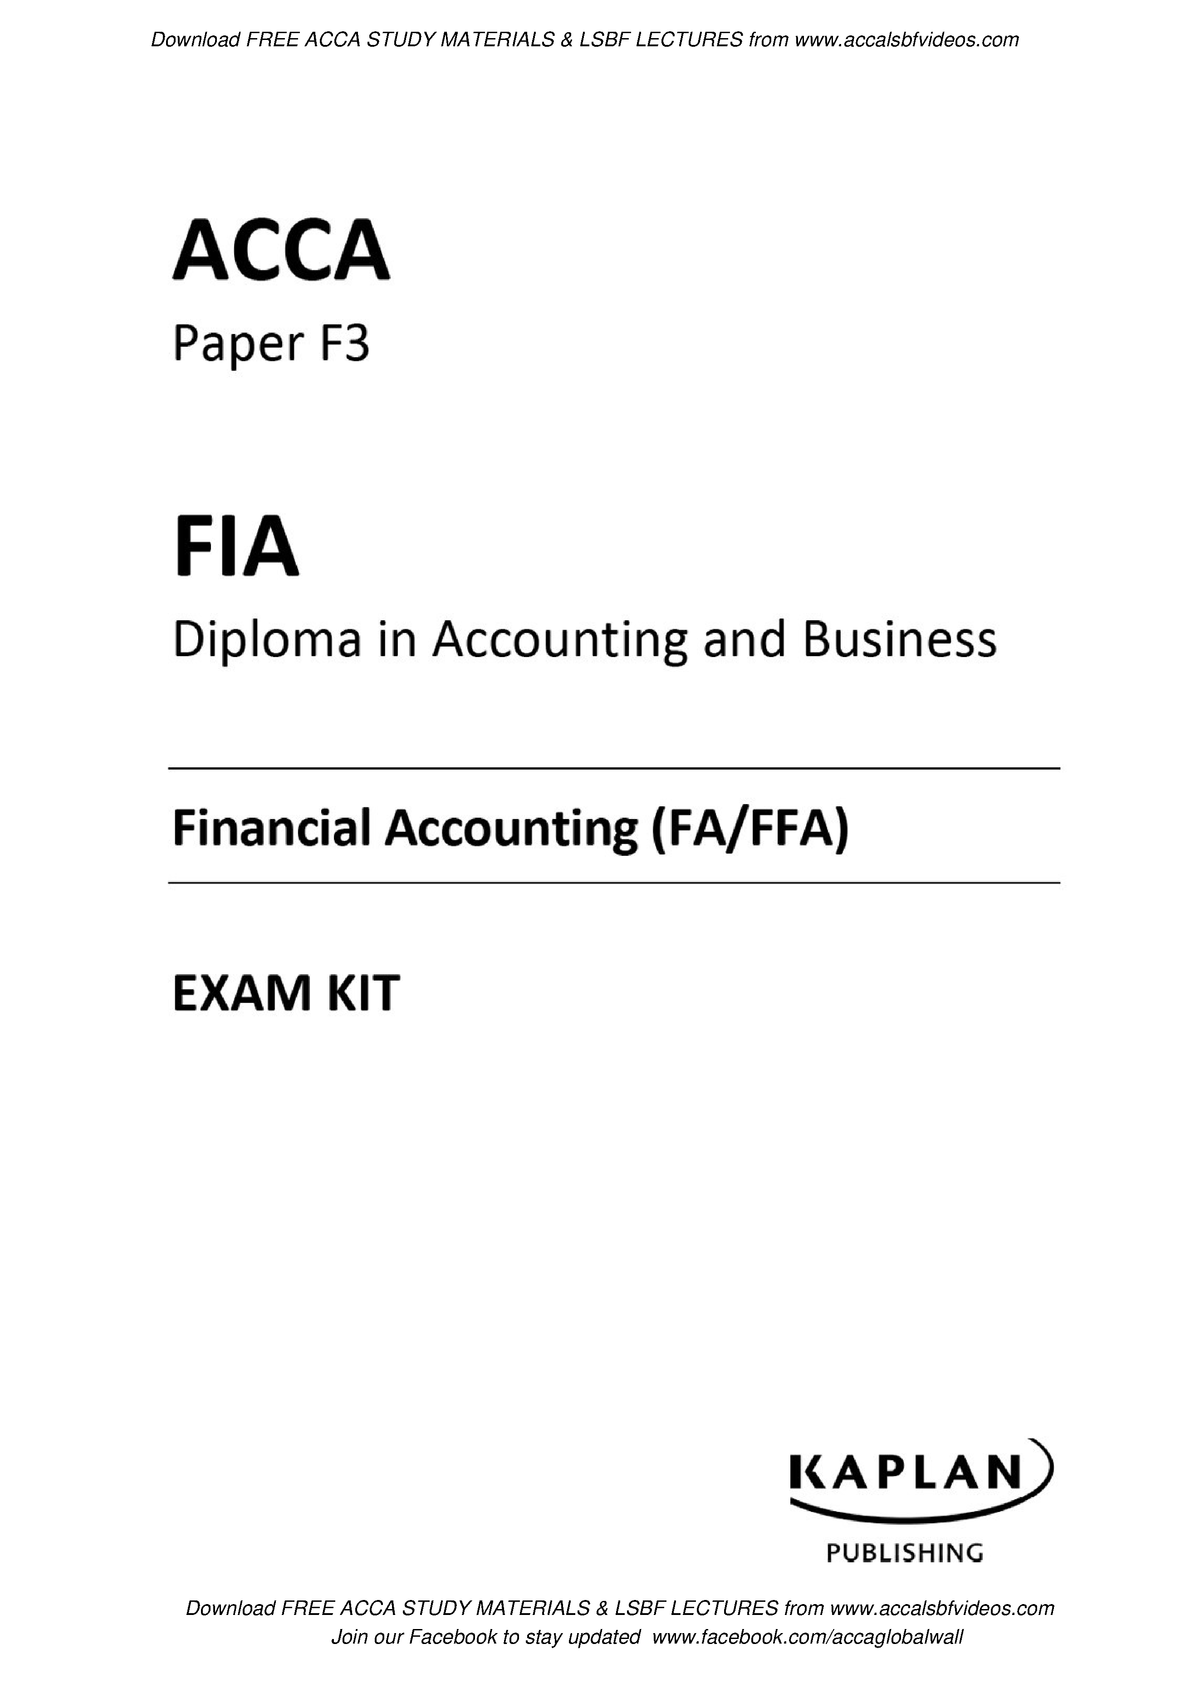 Exam 2018, questions and answers - Financial Accounting I